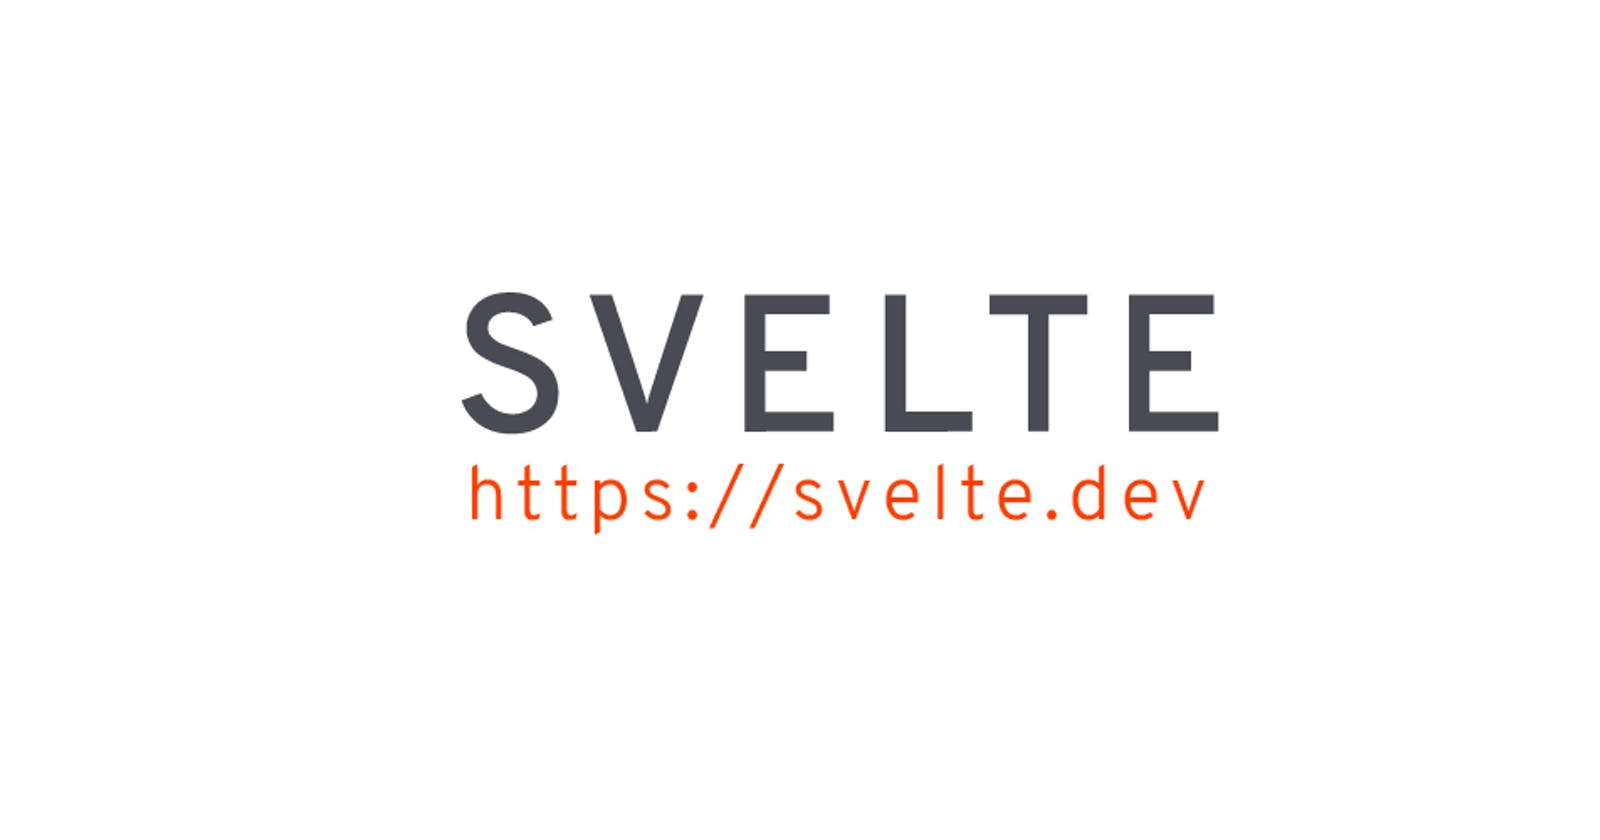 Why am I building everything with Svelte now?